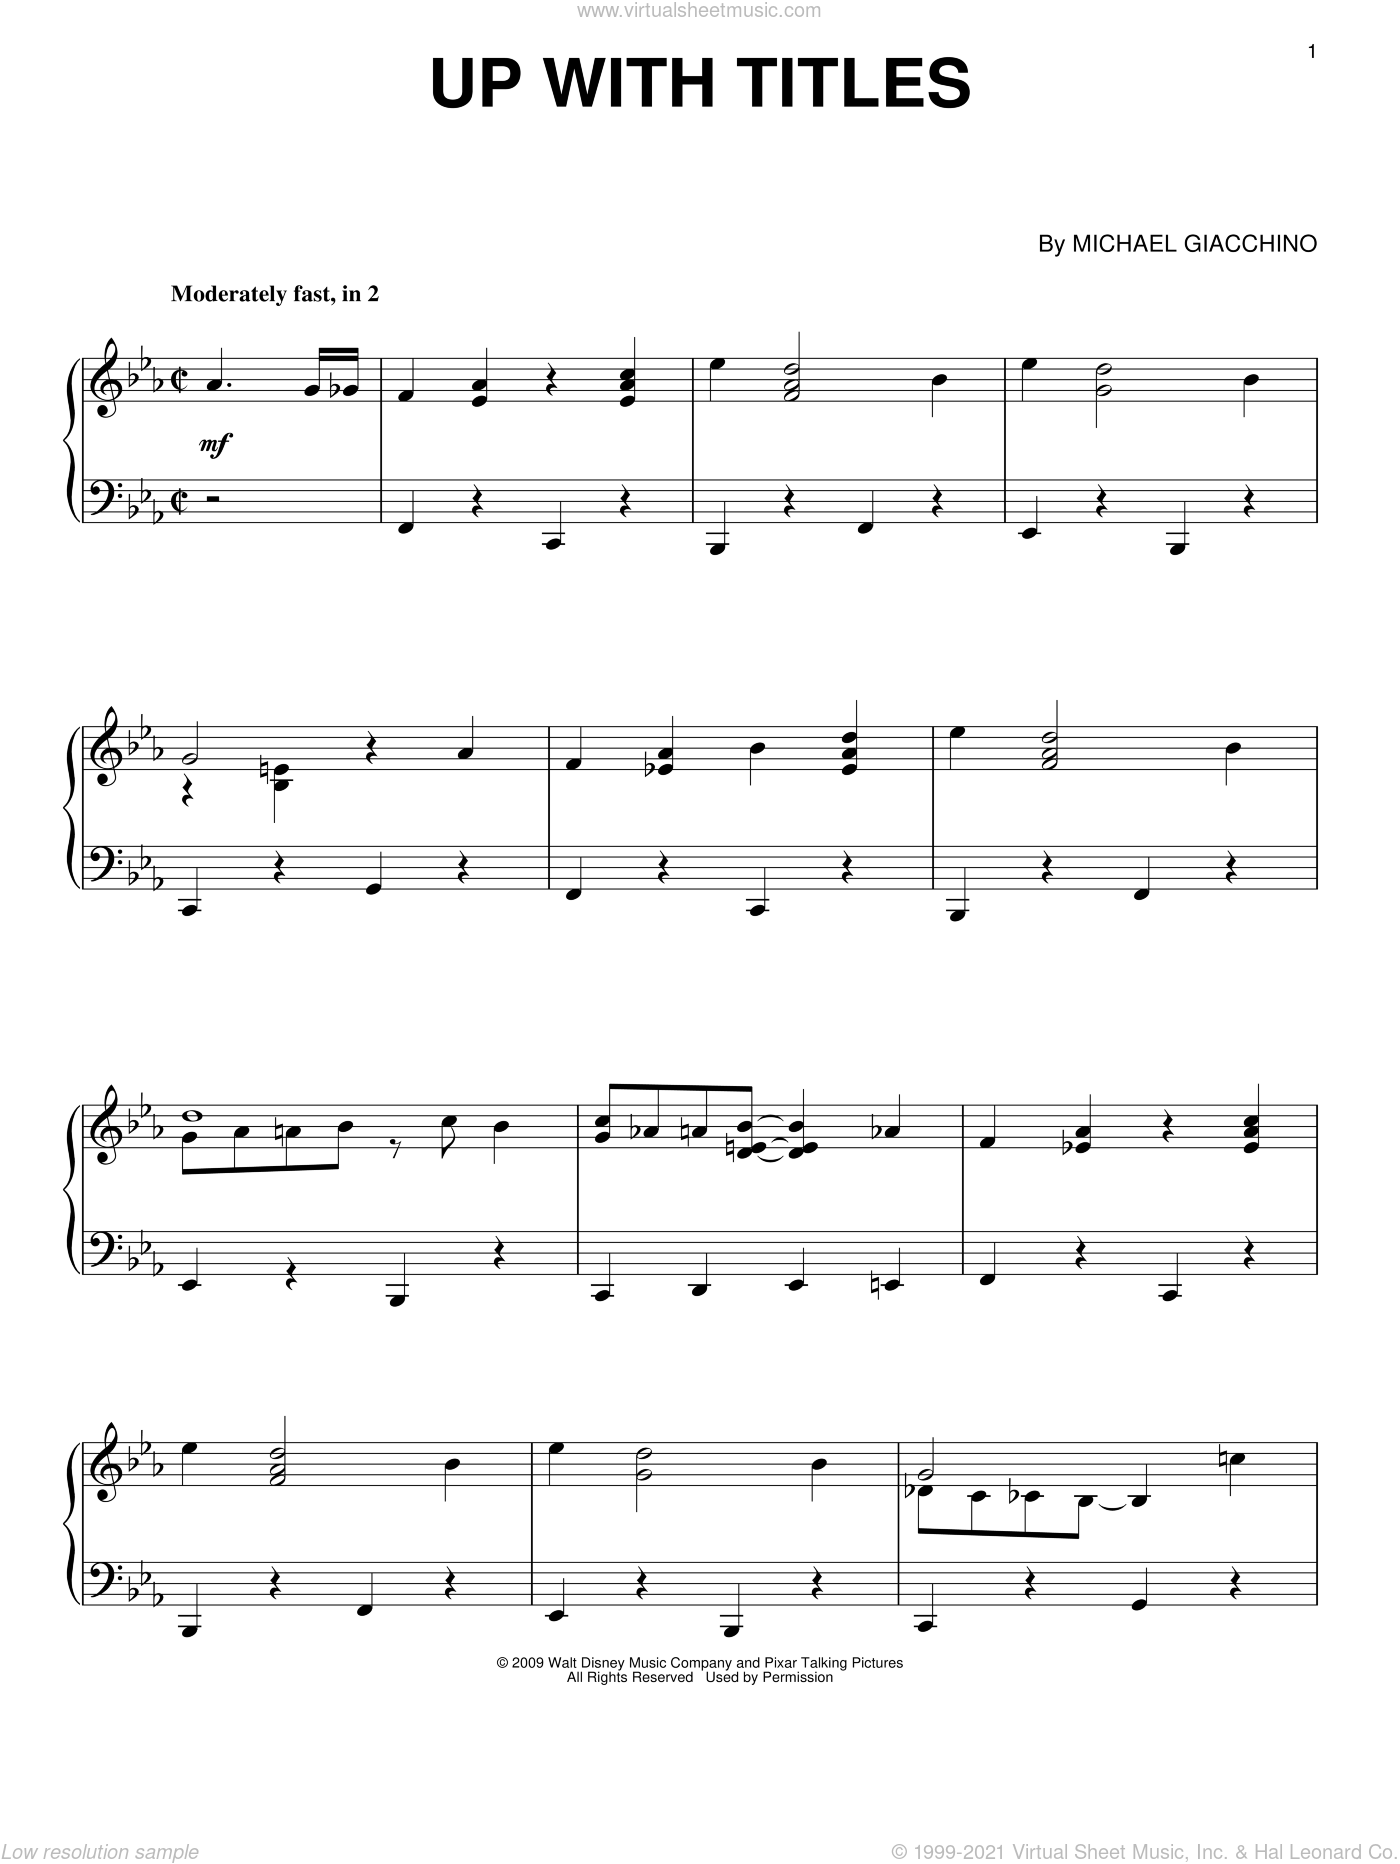 Up With Titles sheet music for piano solo by Michael Giacchino, intermediate piano. Score Image Preview.